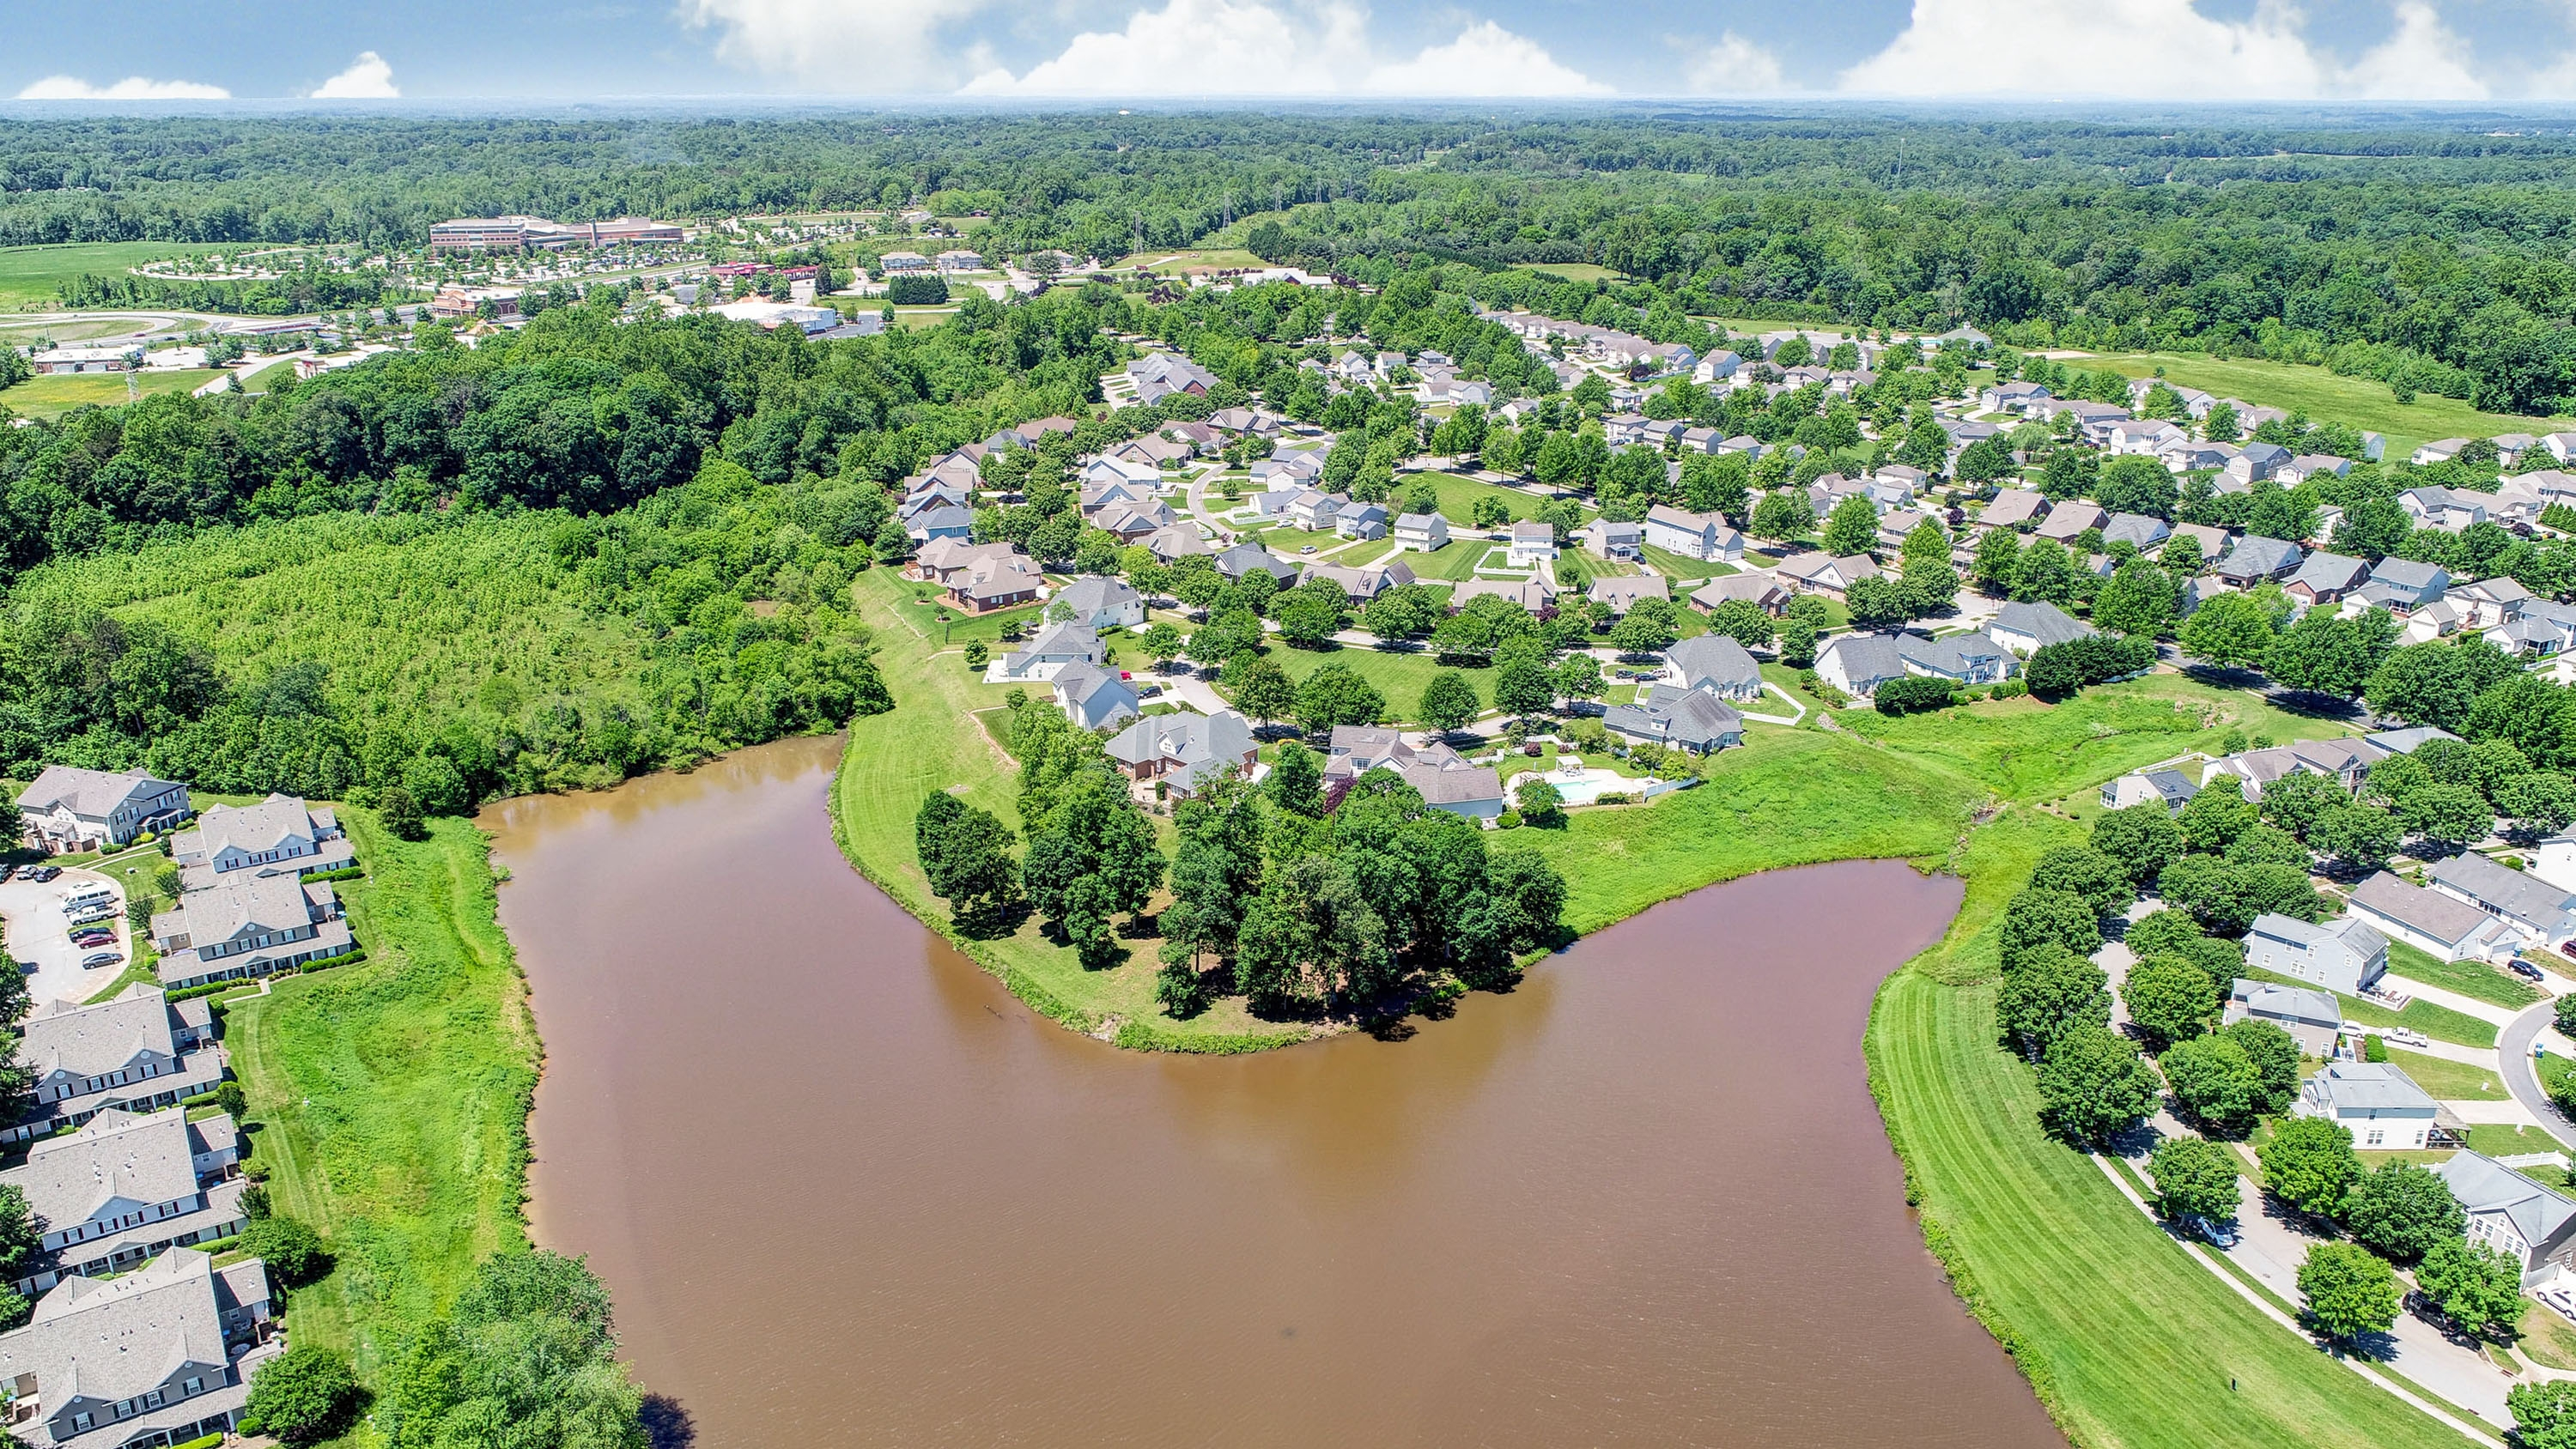 Drone footage of Kinderton Village in Bermuda Run, NC